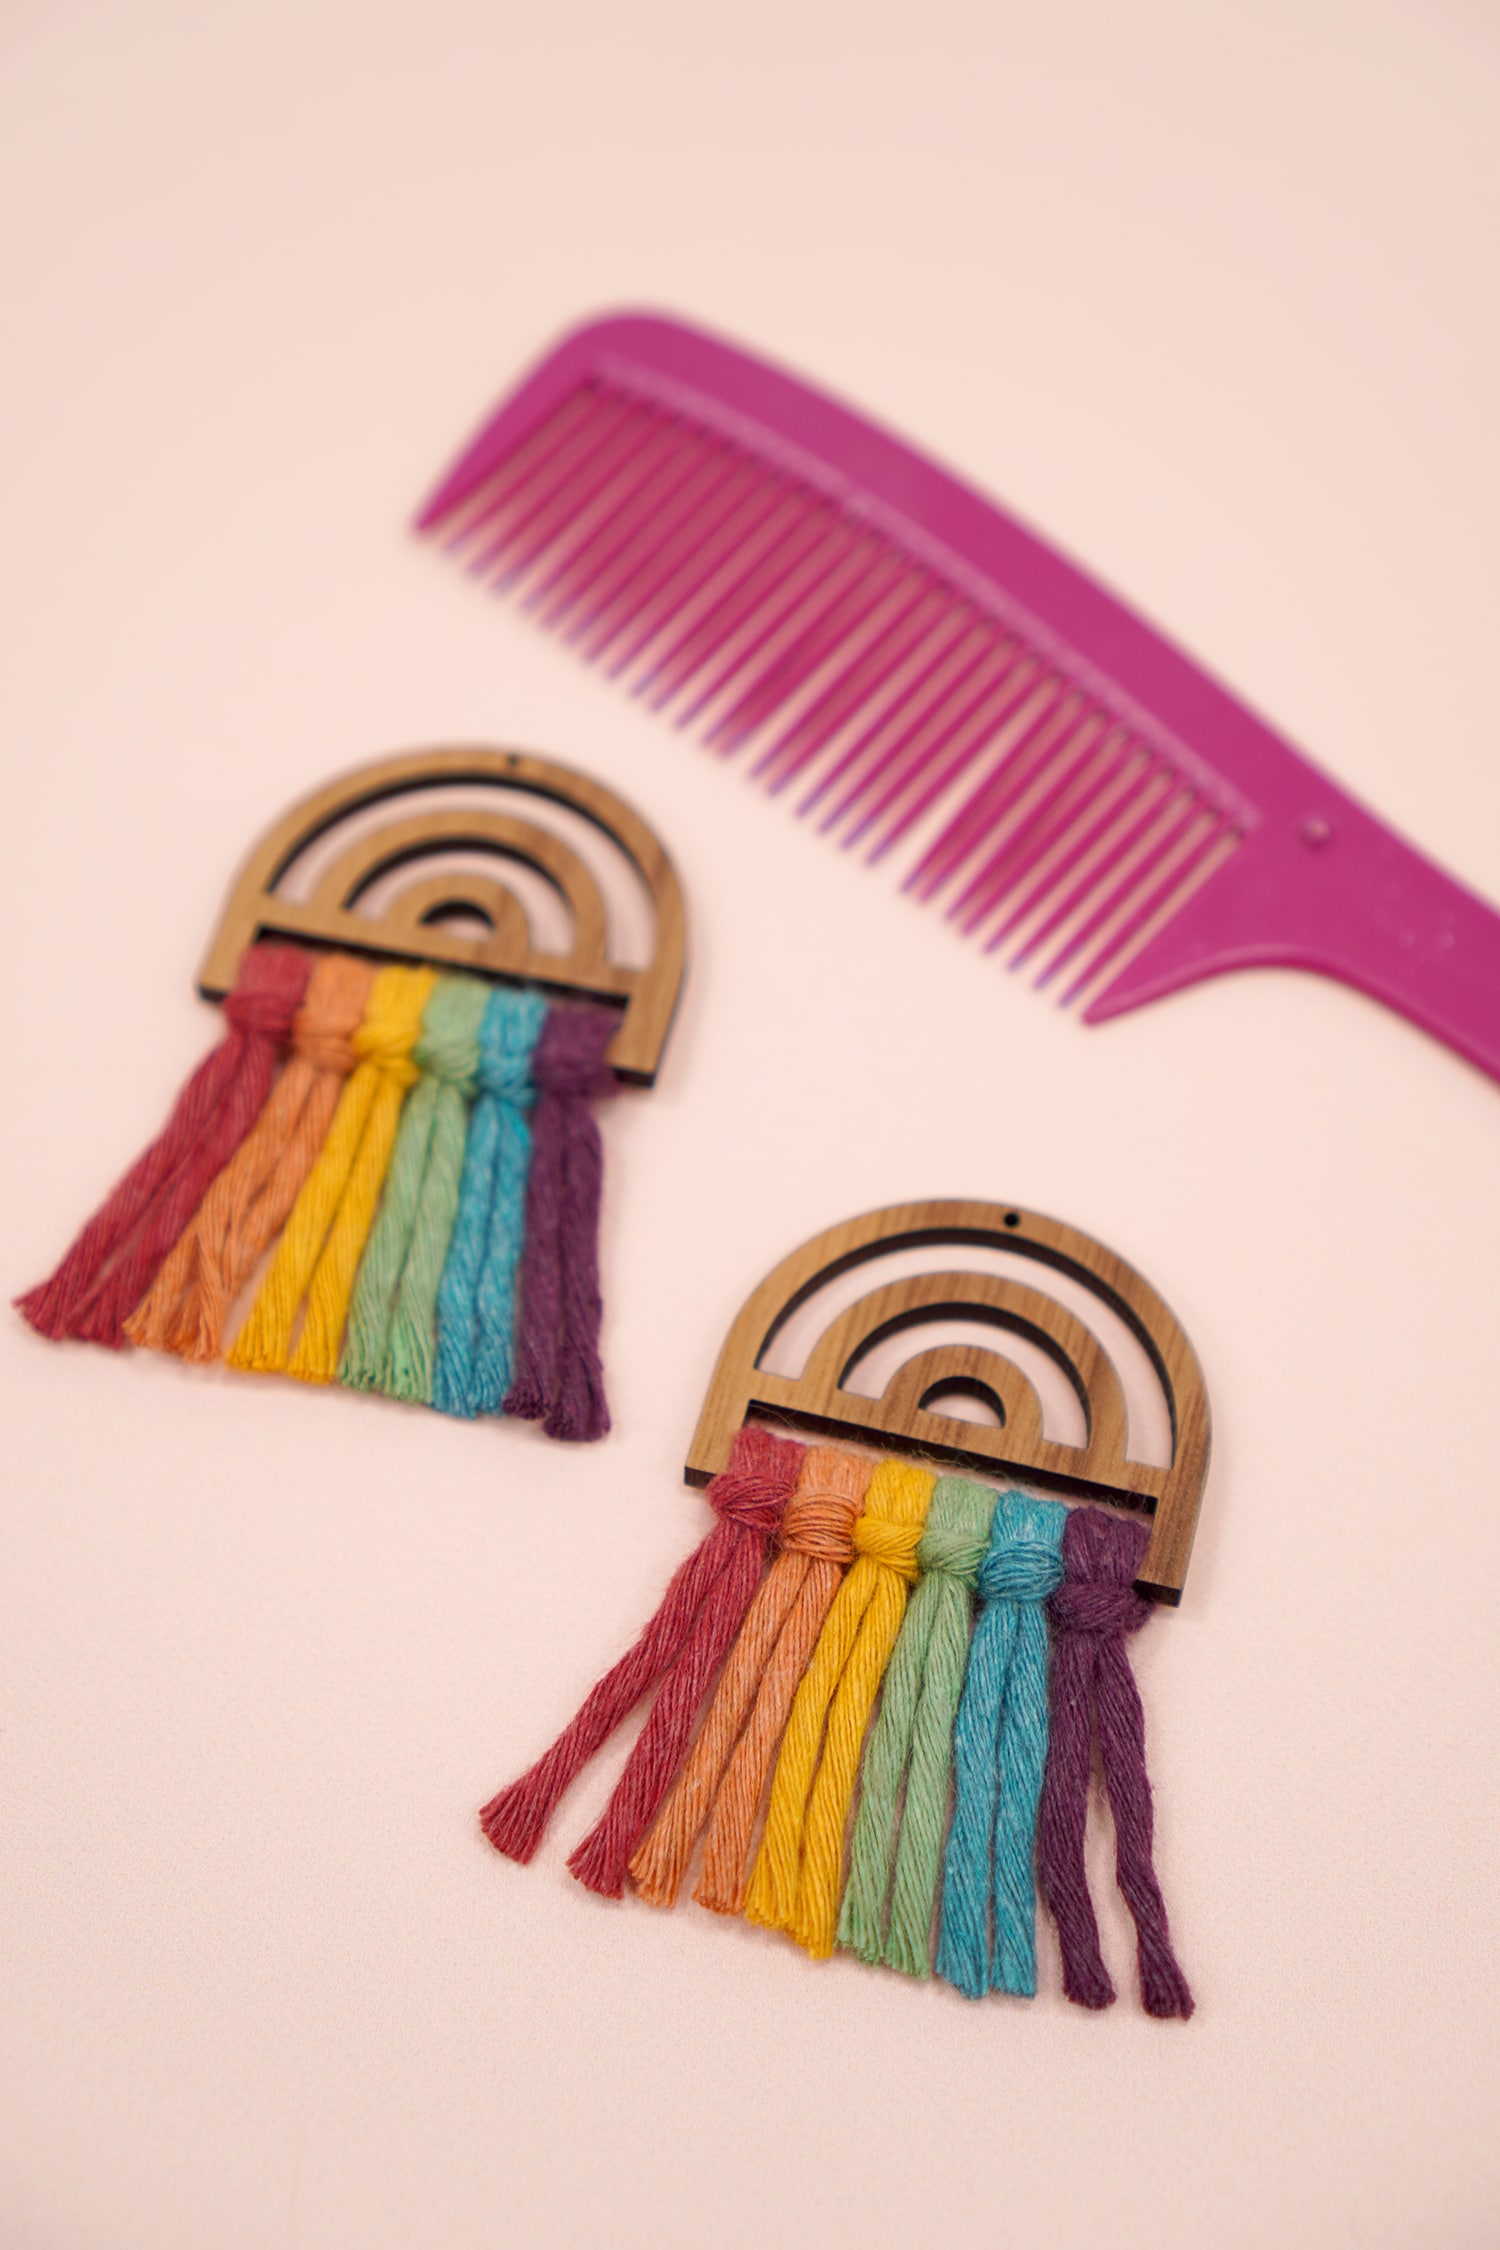 Rainbow macrame earrings with unbrushed macrame cord and pink comb in background